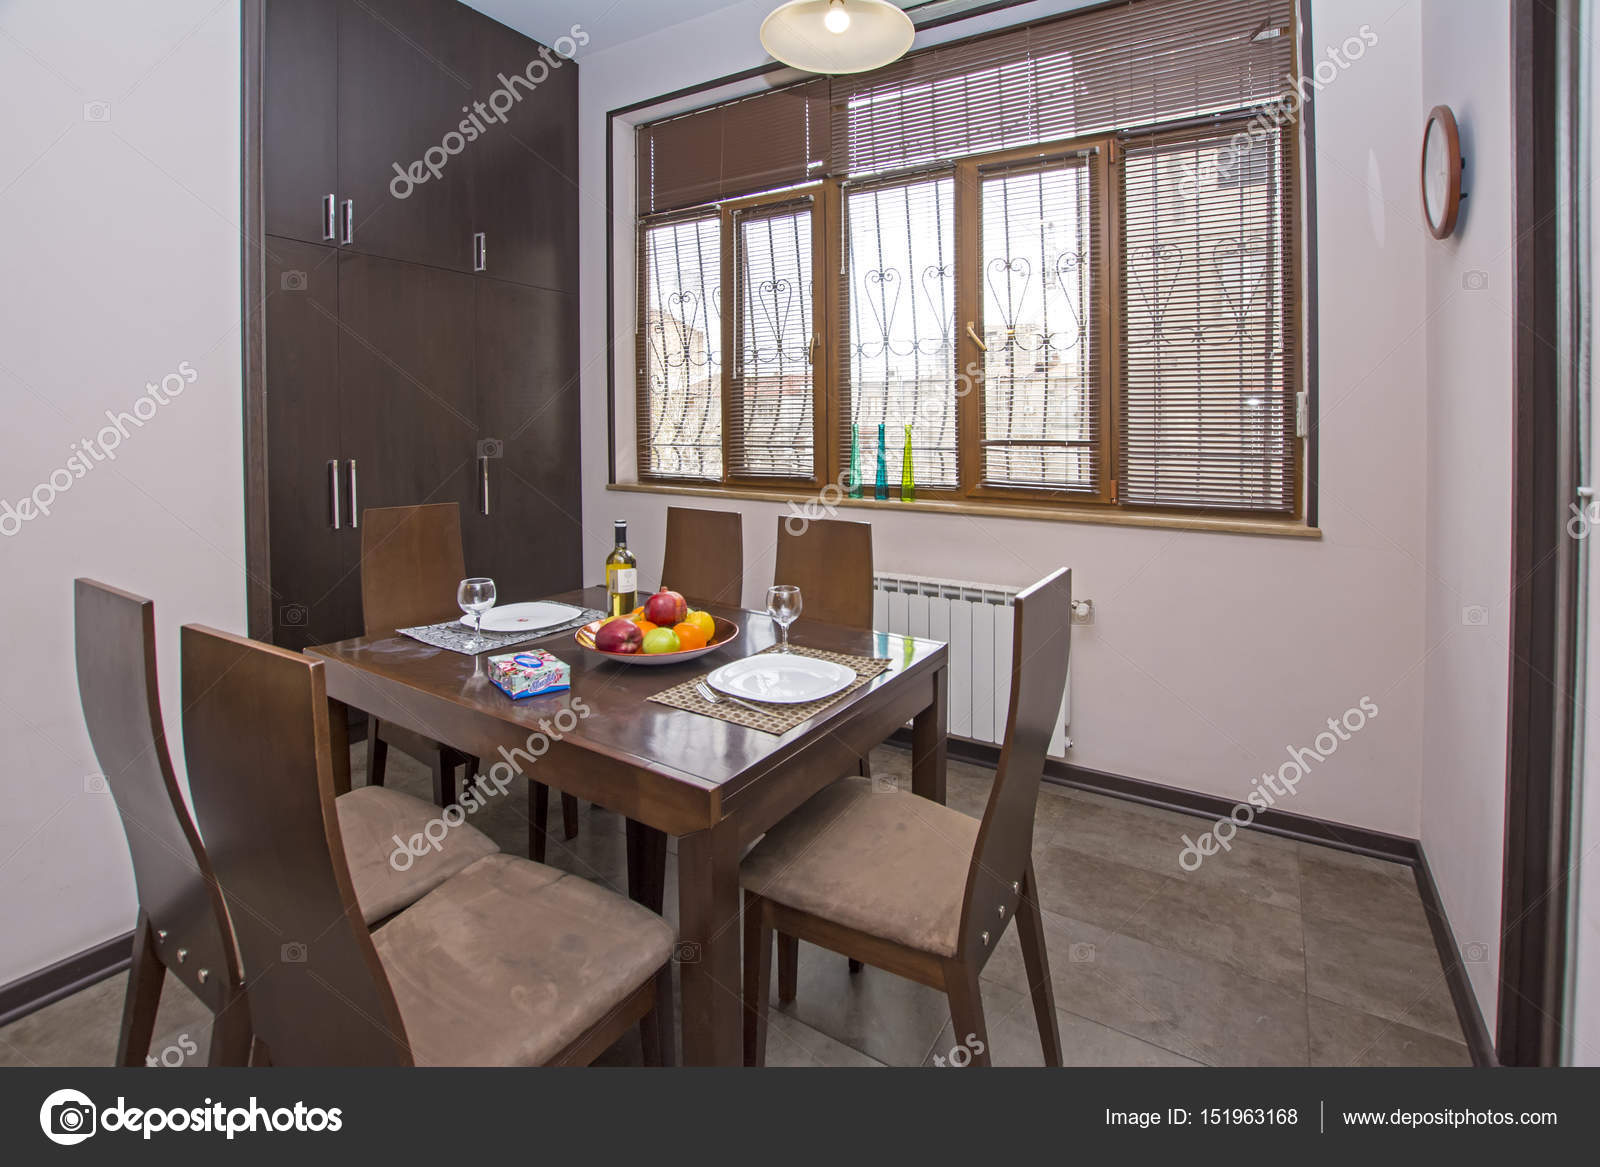 Yerevan Armenia April 11 2017 A Modern Apartment Living Room With Wooden Table And Chairs Luxury Apartment With Stylish Modern Interior Design Stock Editorial Photo C Artavet 151963168